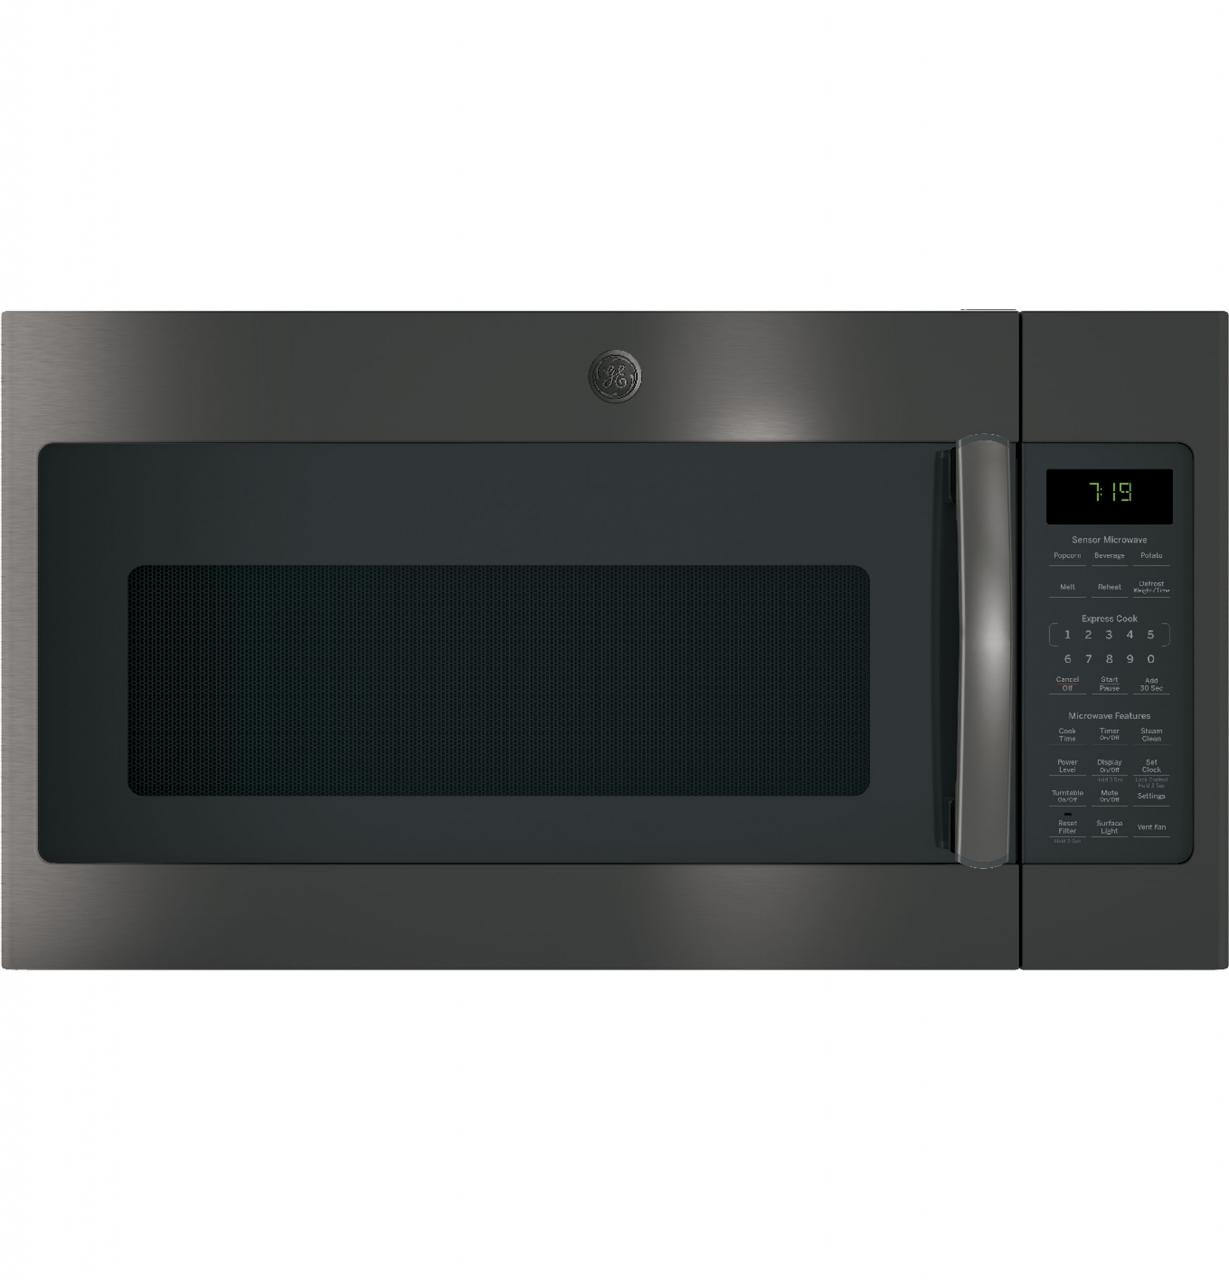 Ge Over The Range Microwave Oven Black Stainless Jnm7196blts